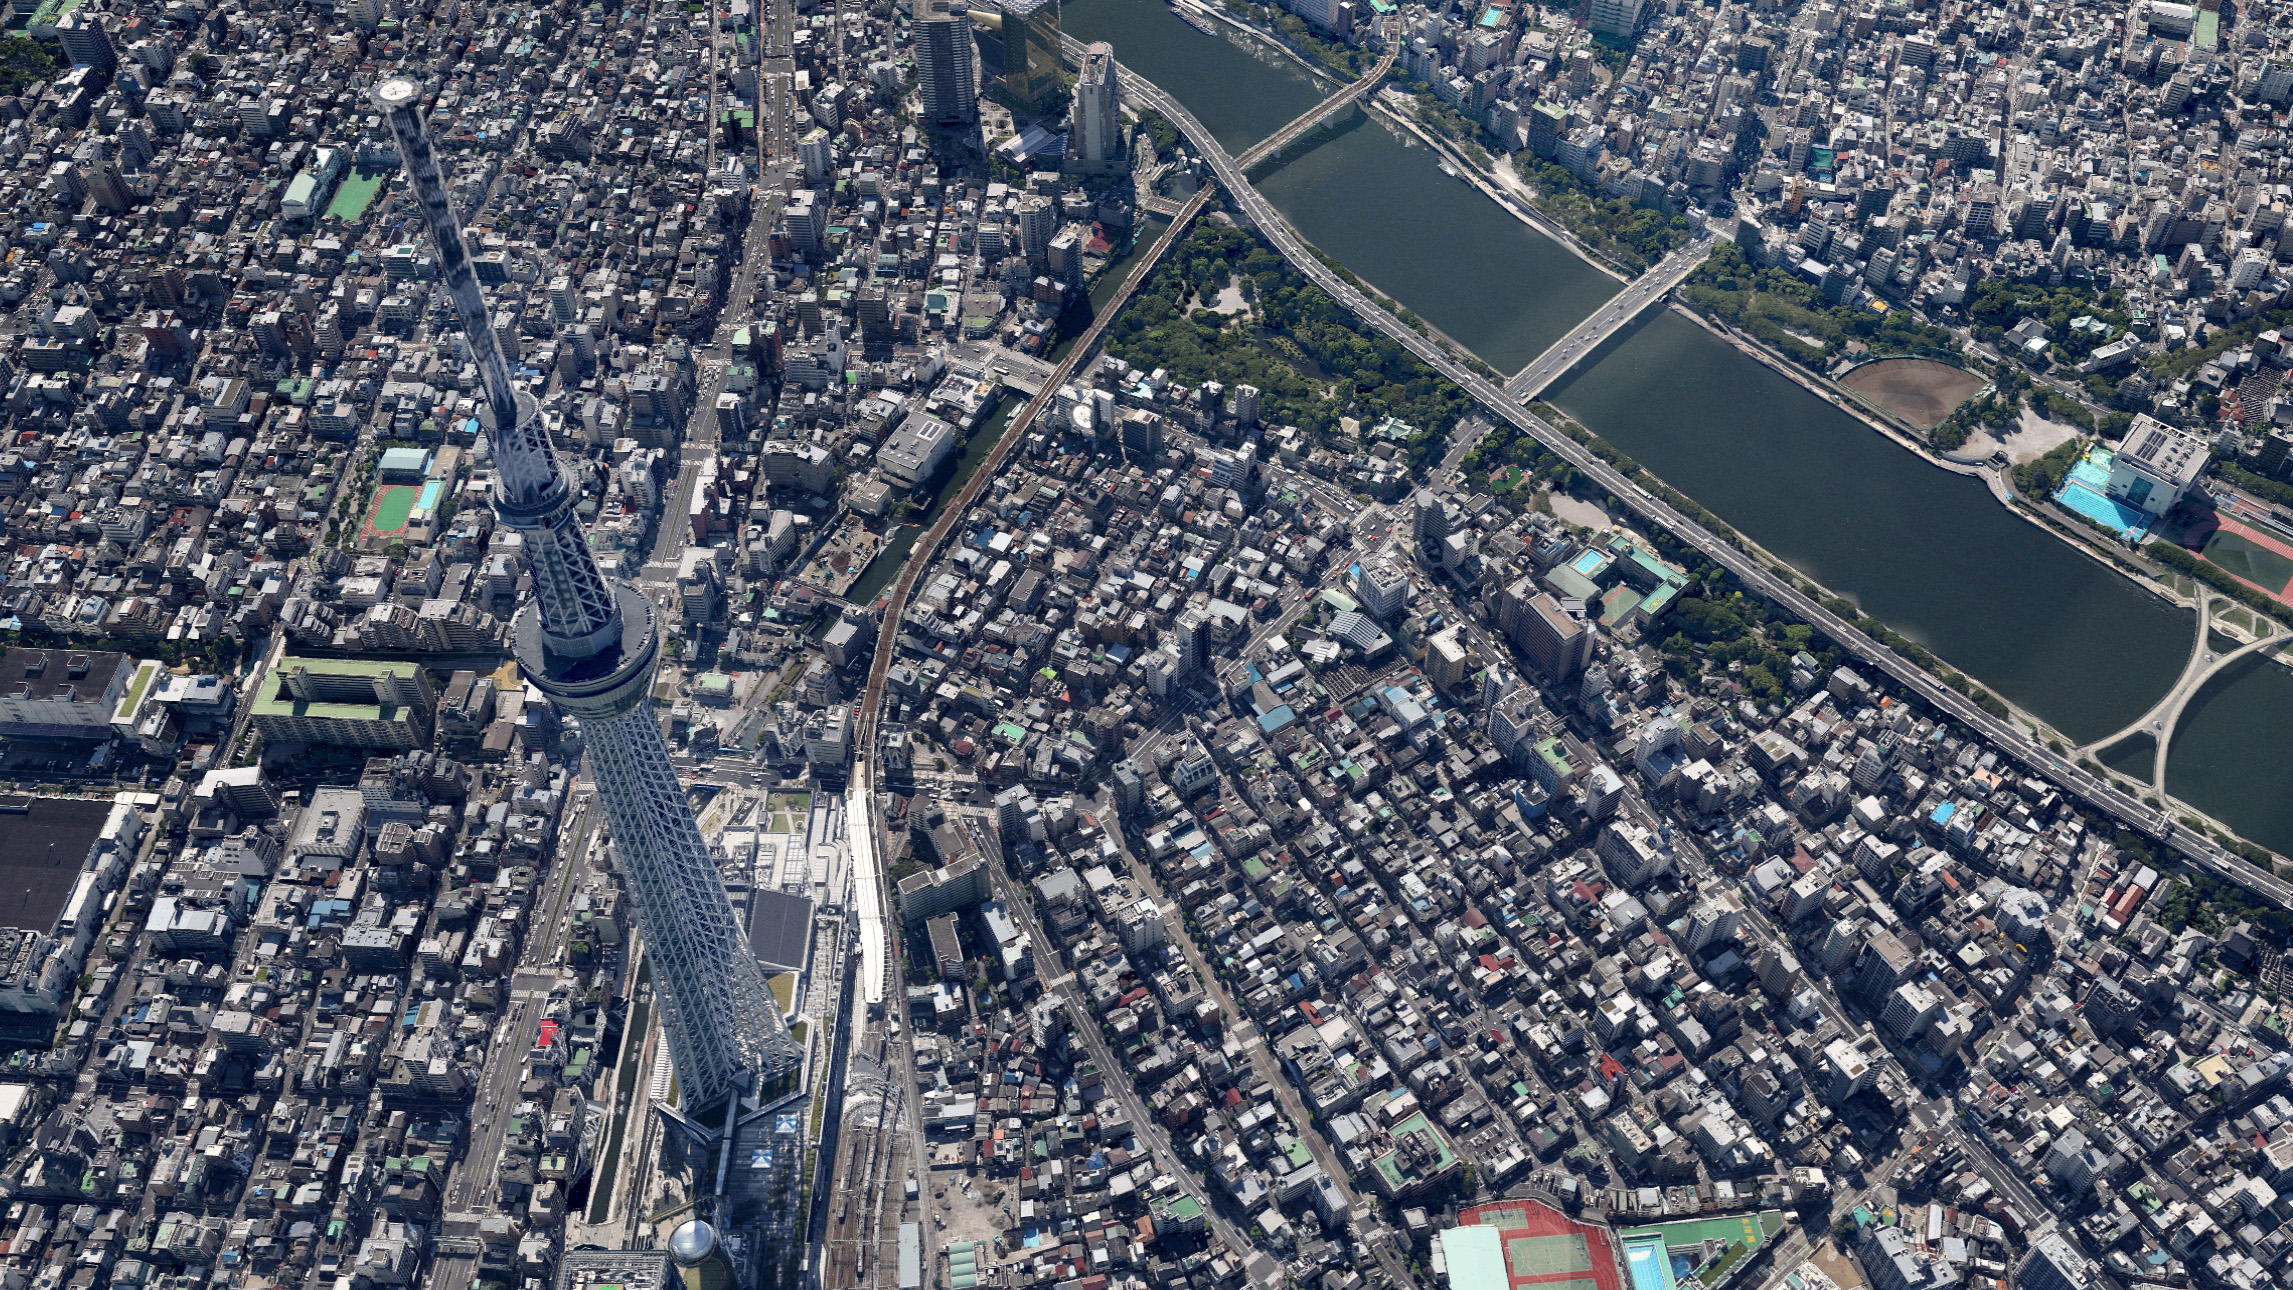 tokyo just became more real on google maps with new 3d imagery